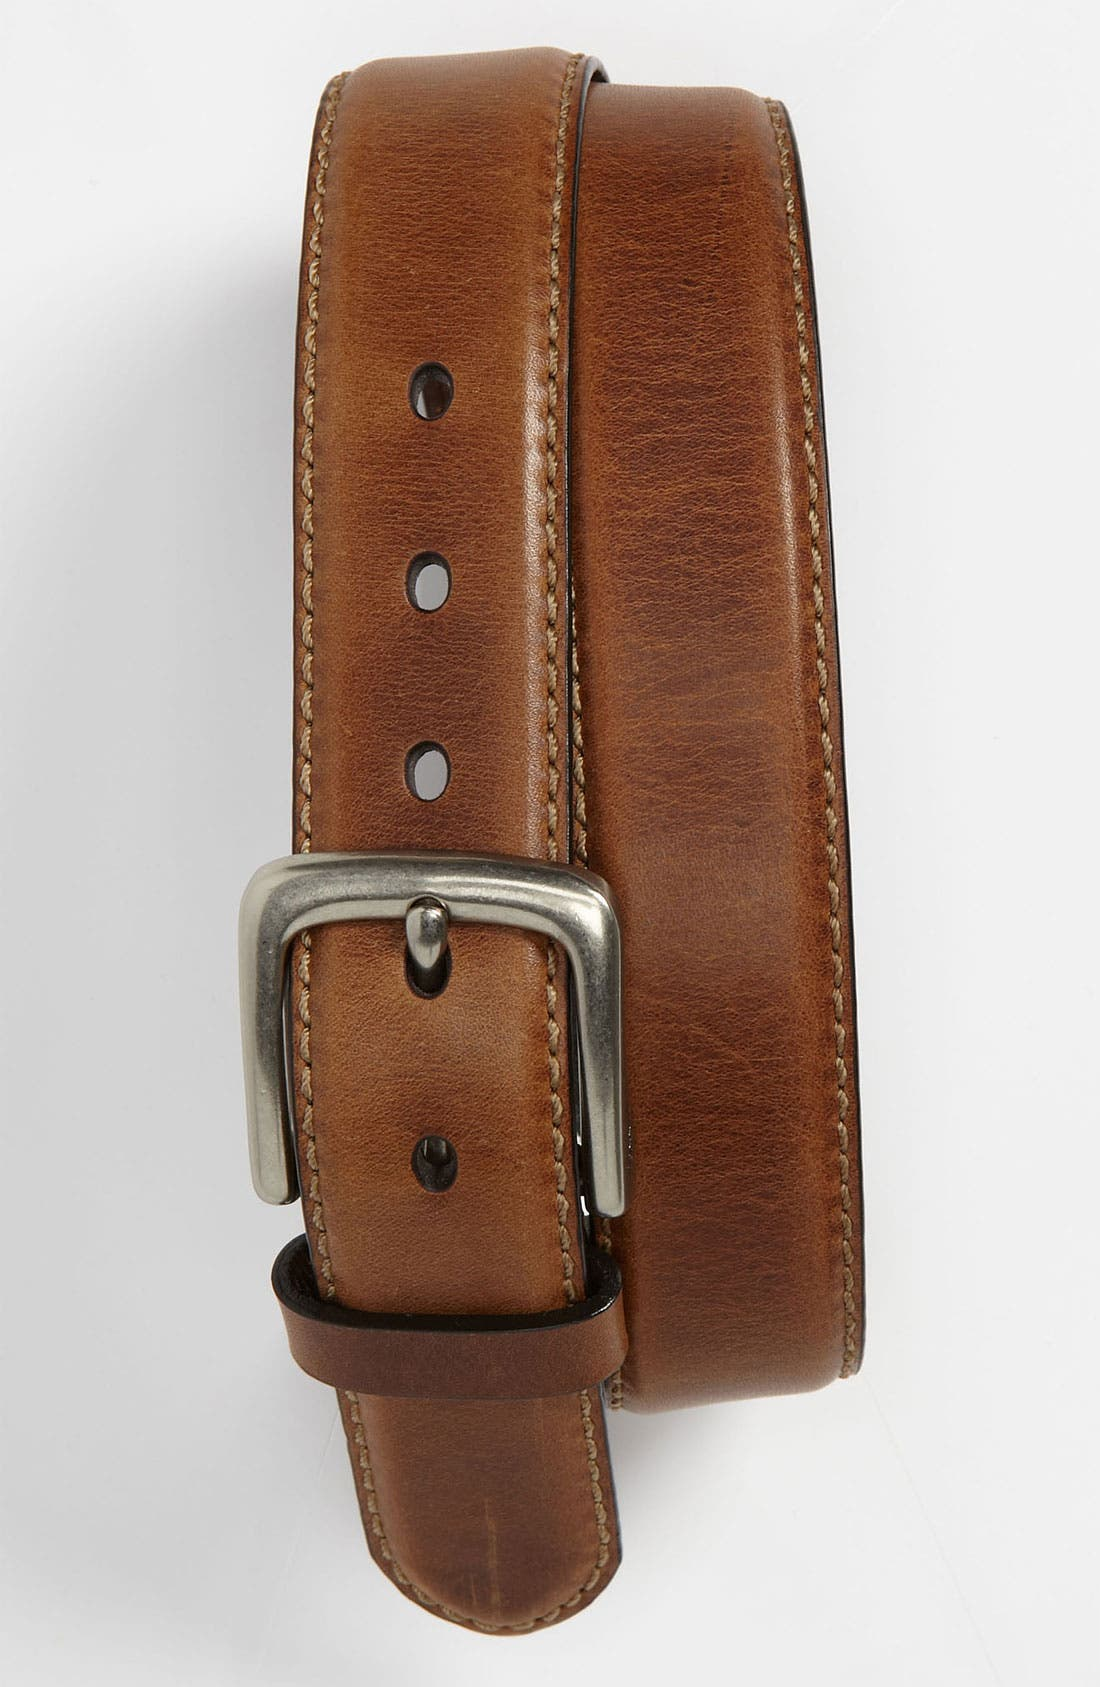 Main Image - Fossil 'Aiden' Leather Belt